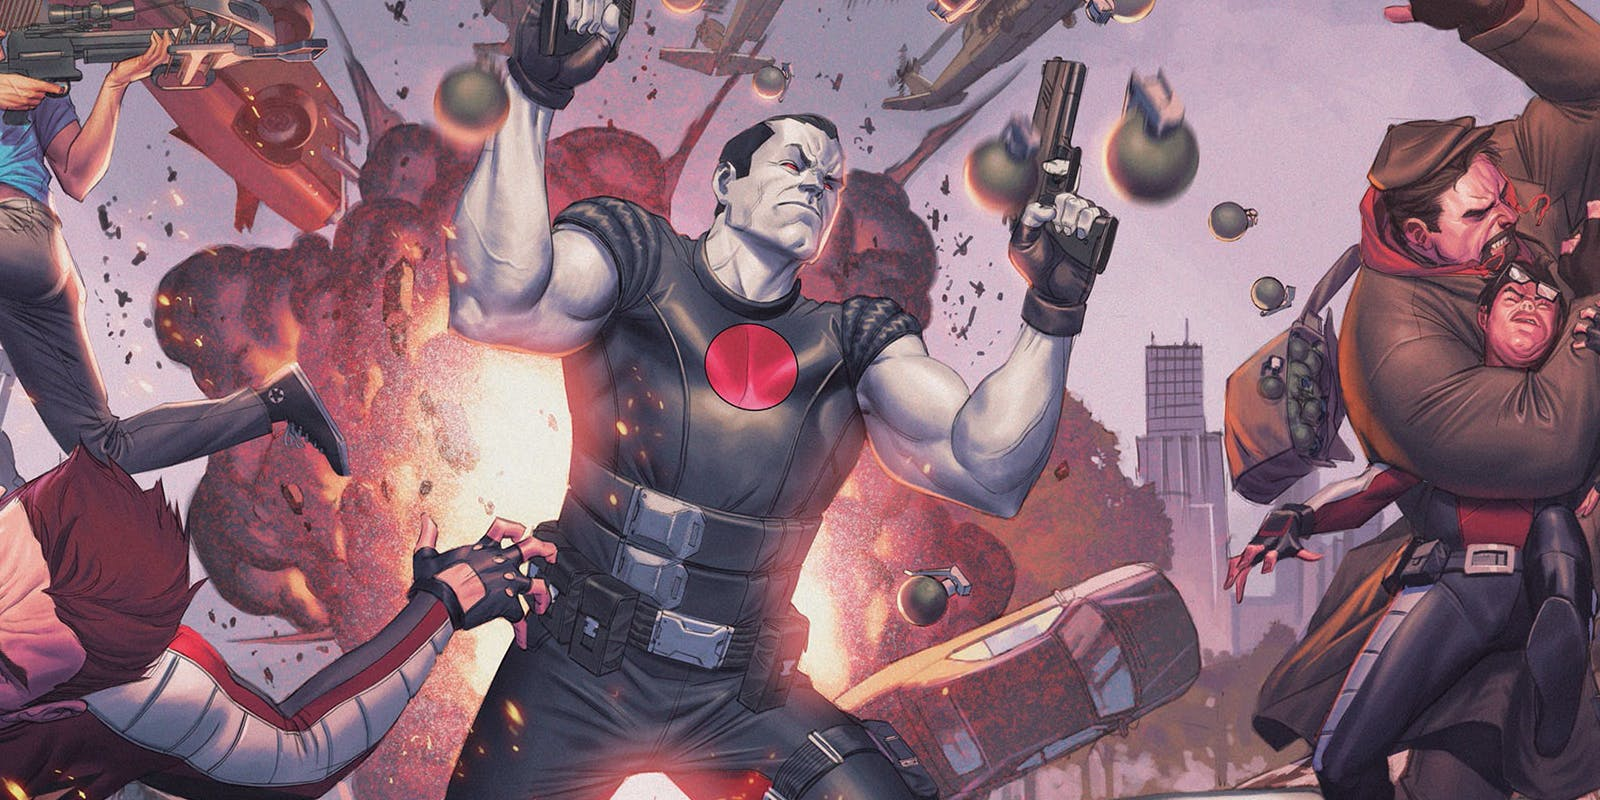 Vin Diesel Upcoming Bloodshot Movie